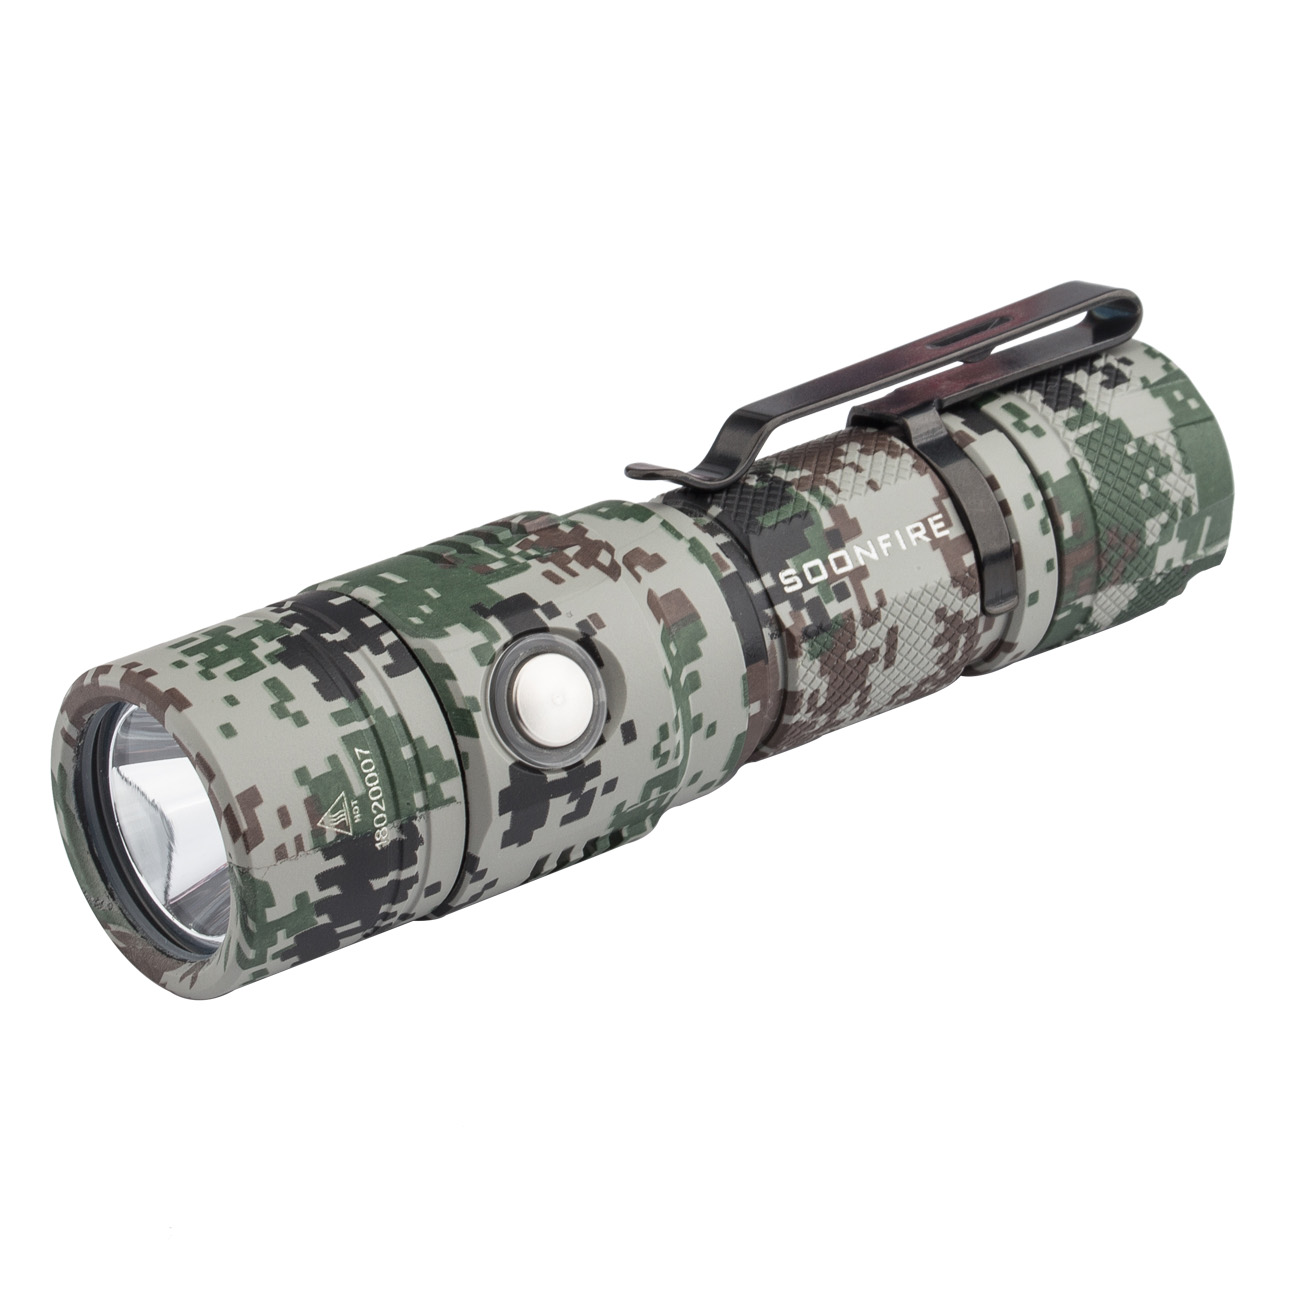 Soonfire E09 Multifunctional 1000 Lumen Ultra-bright Rechargeable CREE XP-L LED Flashlight